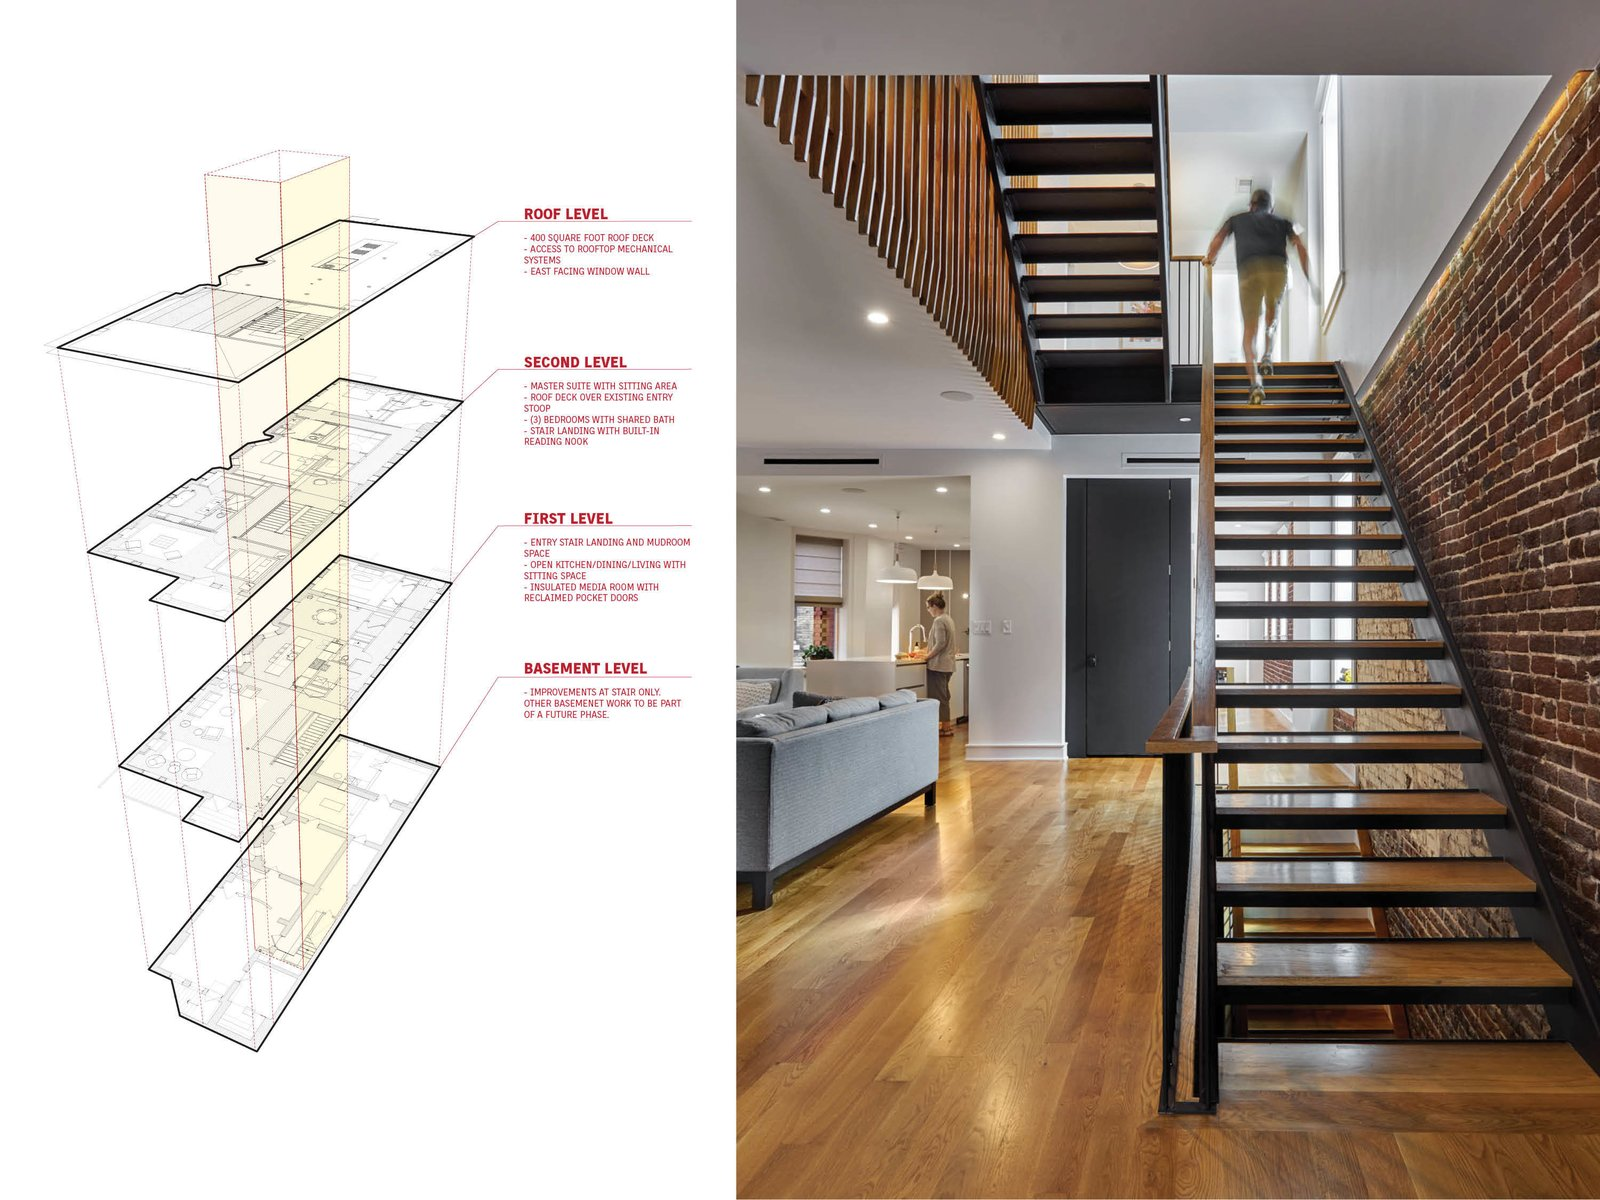 Staircase, Wood Tread, Wood Railing, Metal Tread, and Metal Railing Organization Diagram  The Historic Ely Building